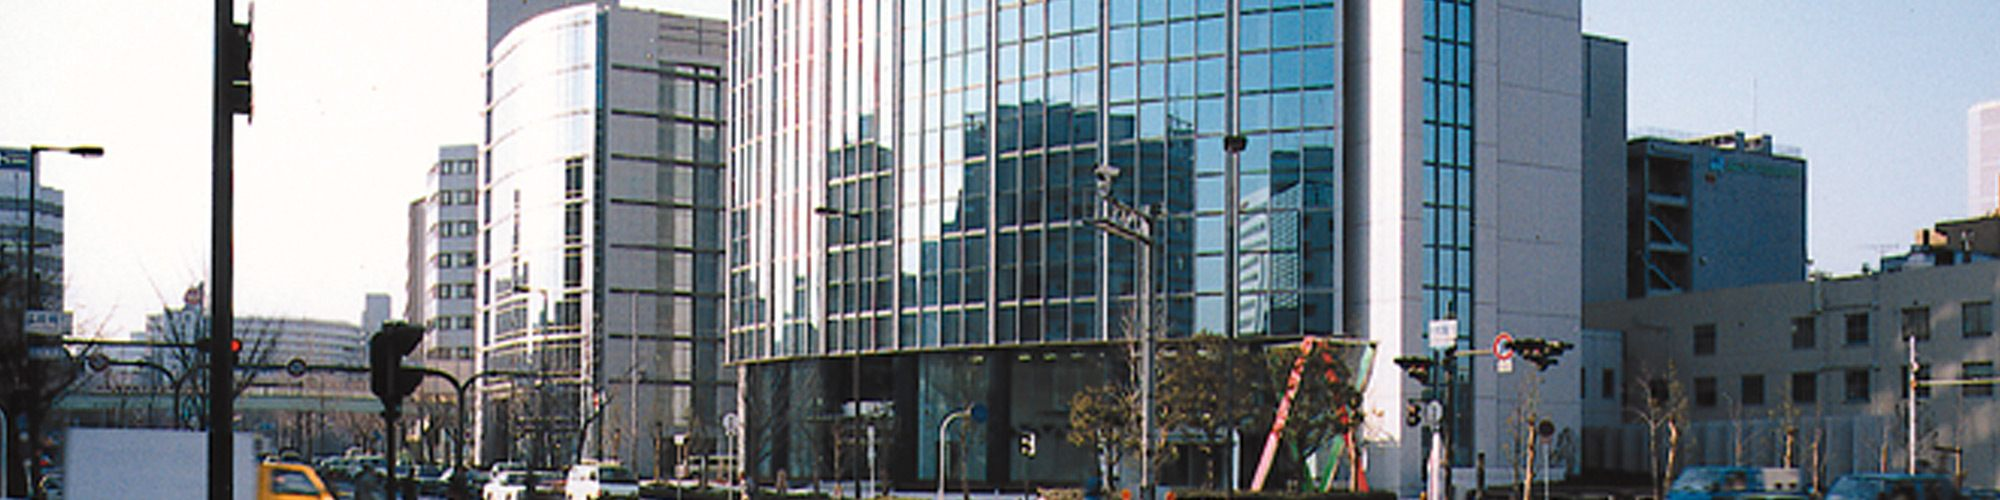 Edobori Center Building Osaka Banner 1